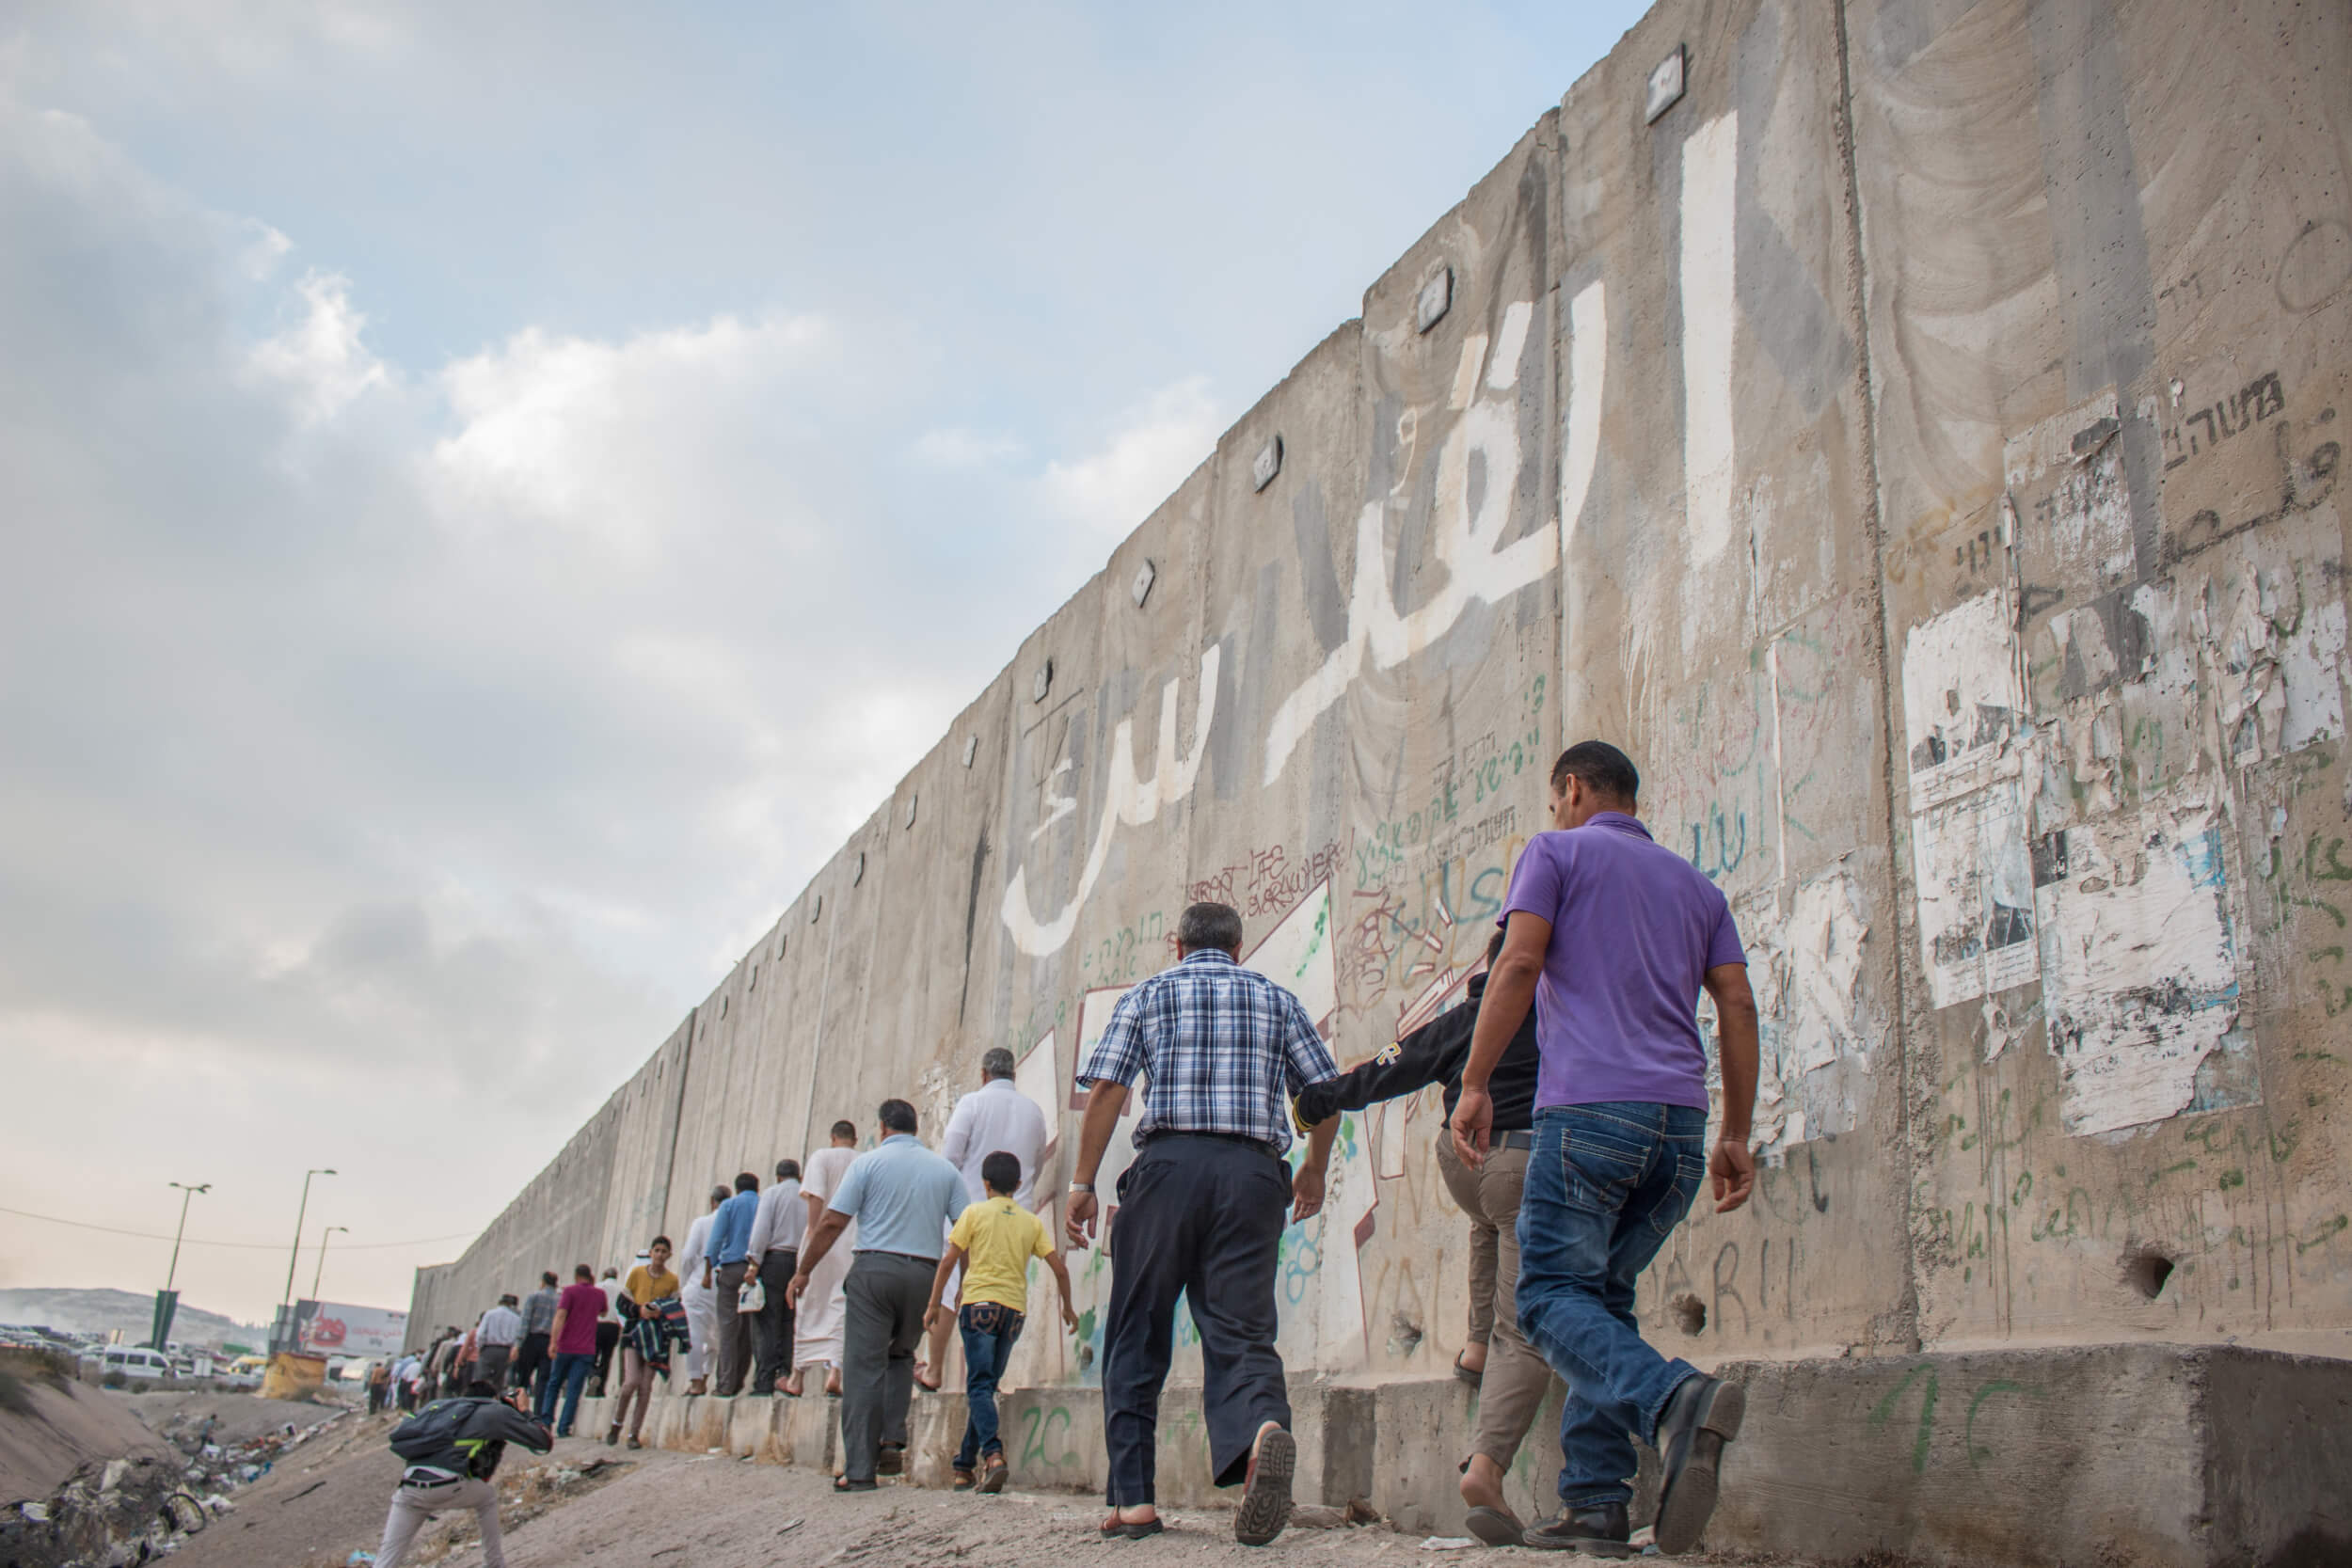 Men over 50 years old do not need a permit to cross through Qalandia, while younger men need permission from the Israeli government. (Photo: Karam Saleem)